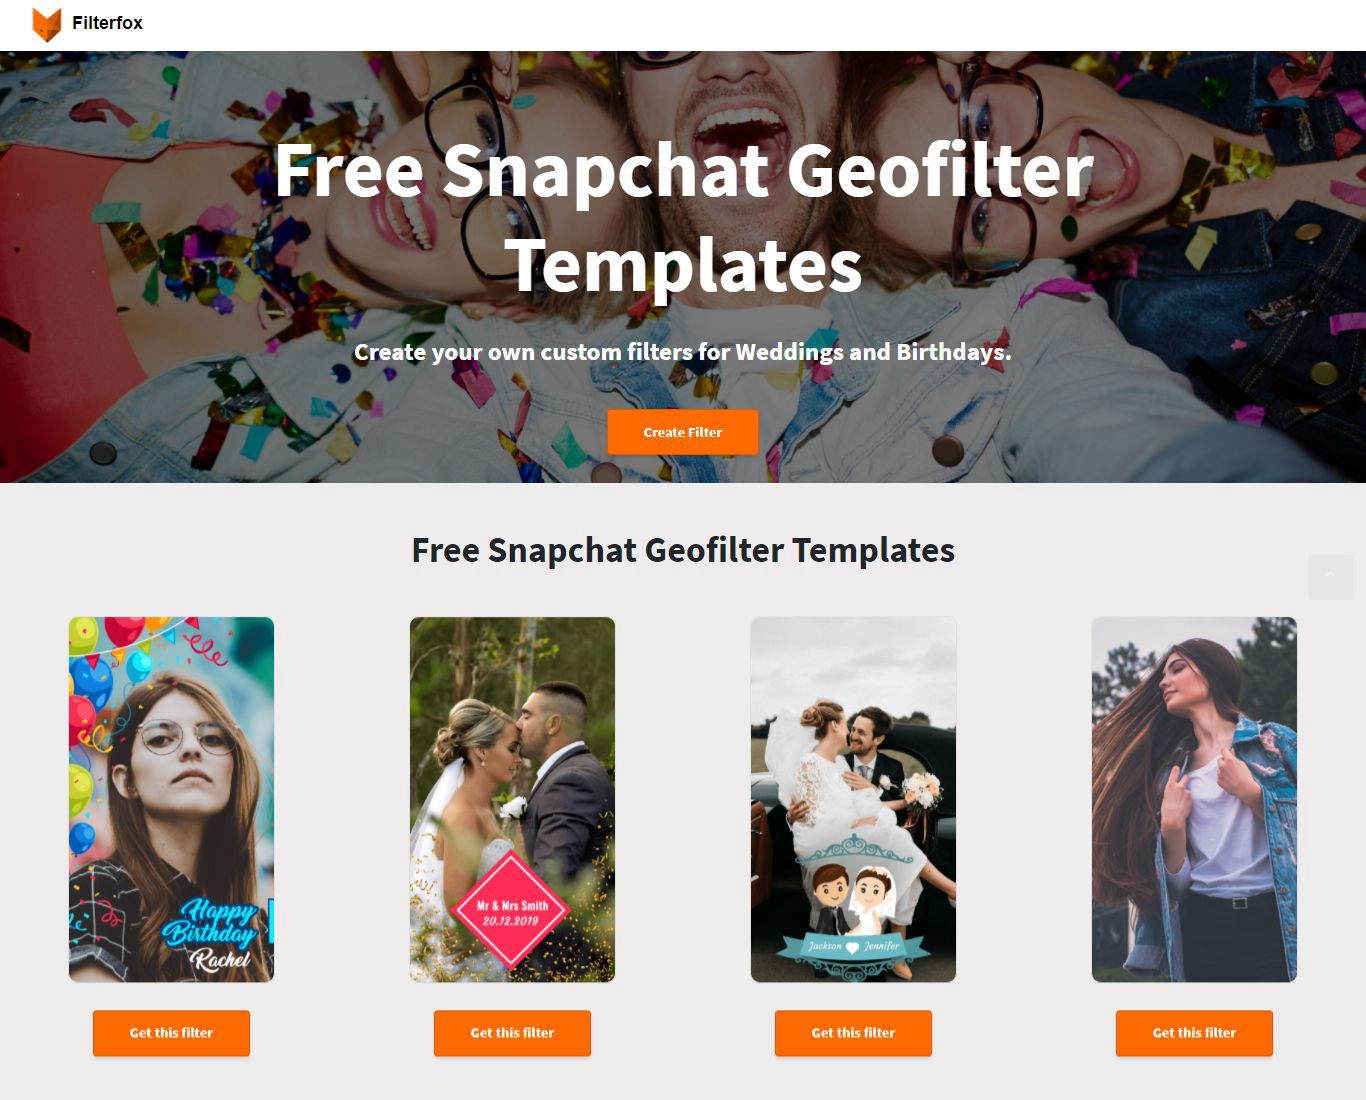 let me tell you right now that you do have to pay the snapchat fee for the filter to live on the app however i have got free templates for you - Snapchat Geofilter Template Free